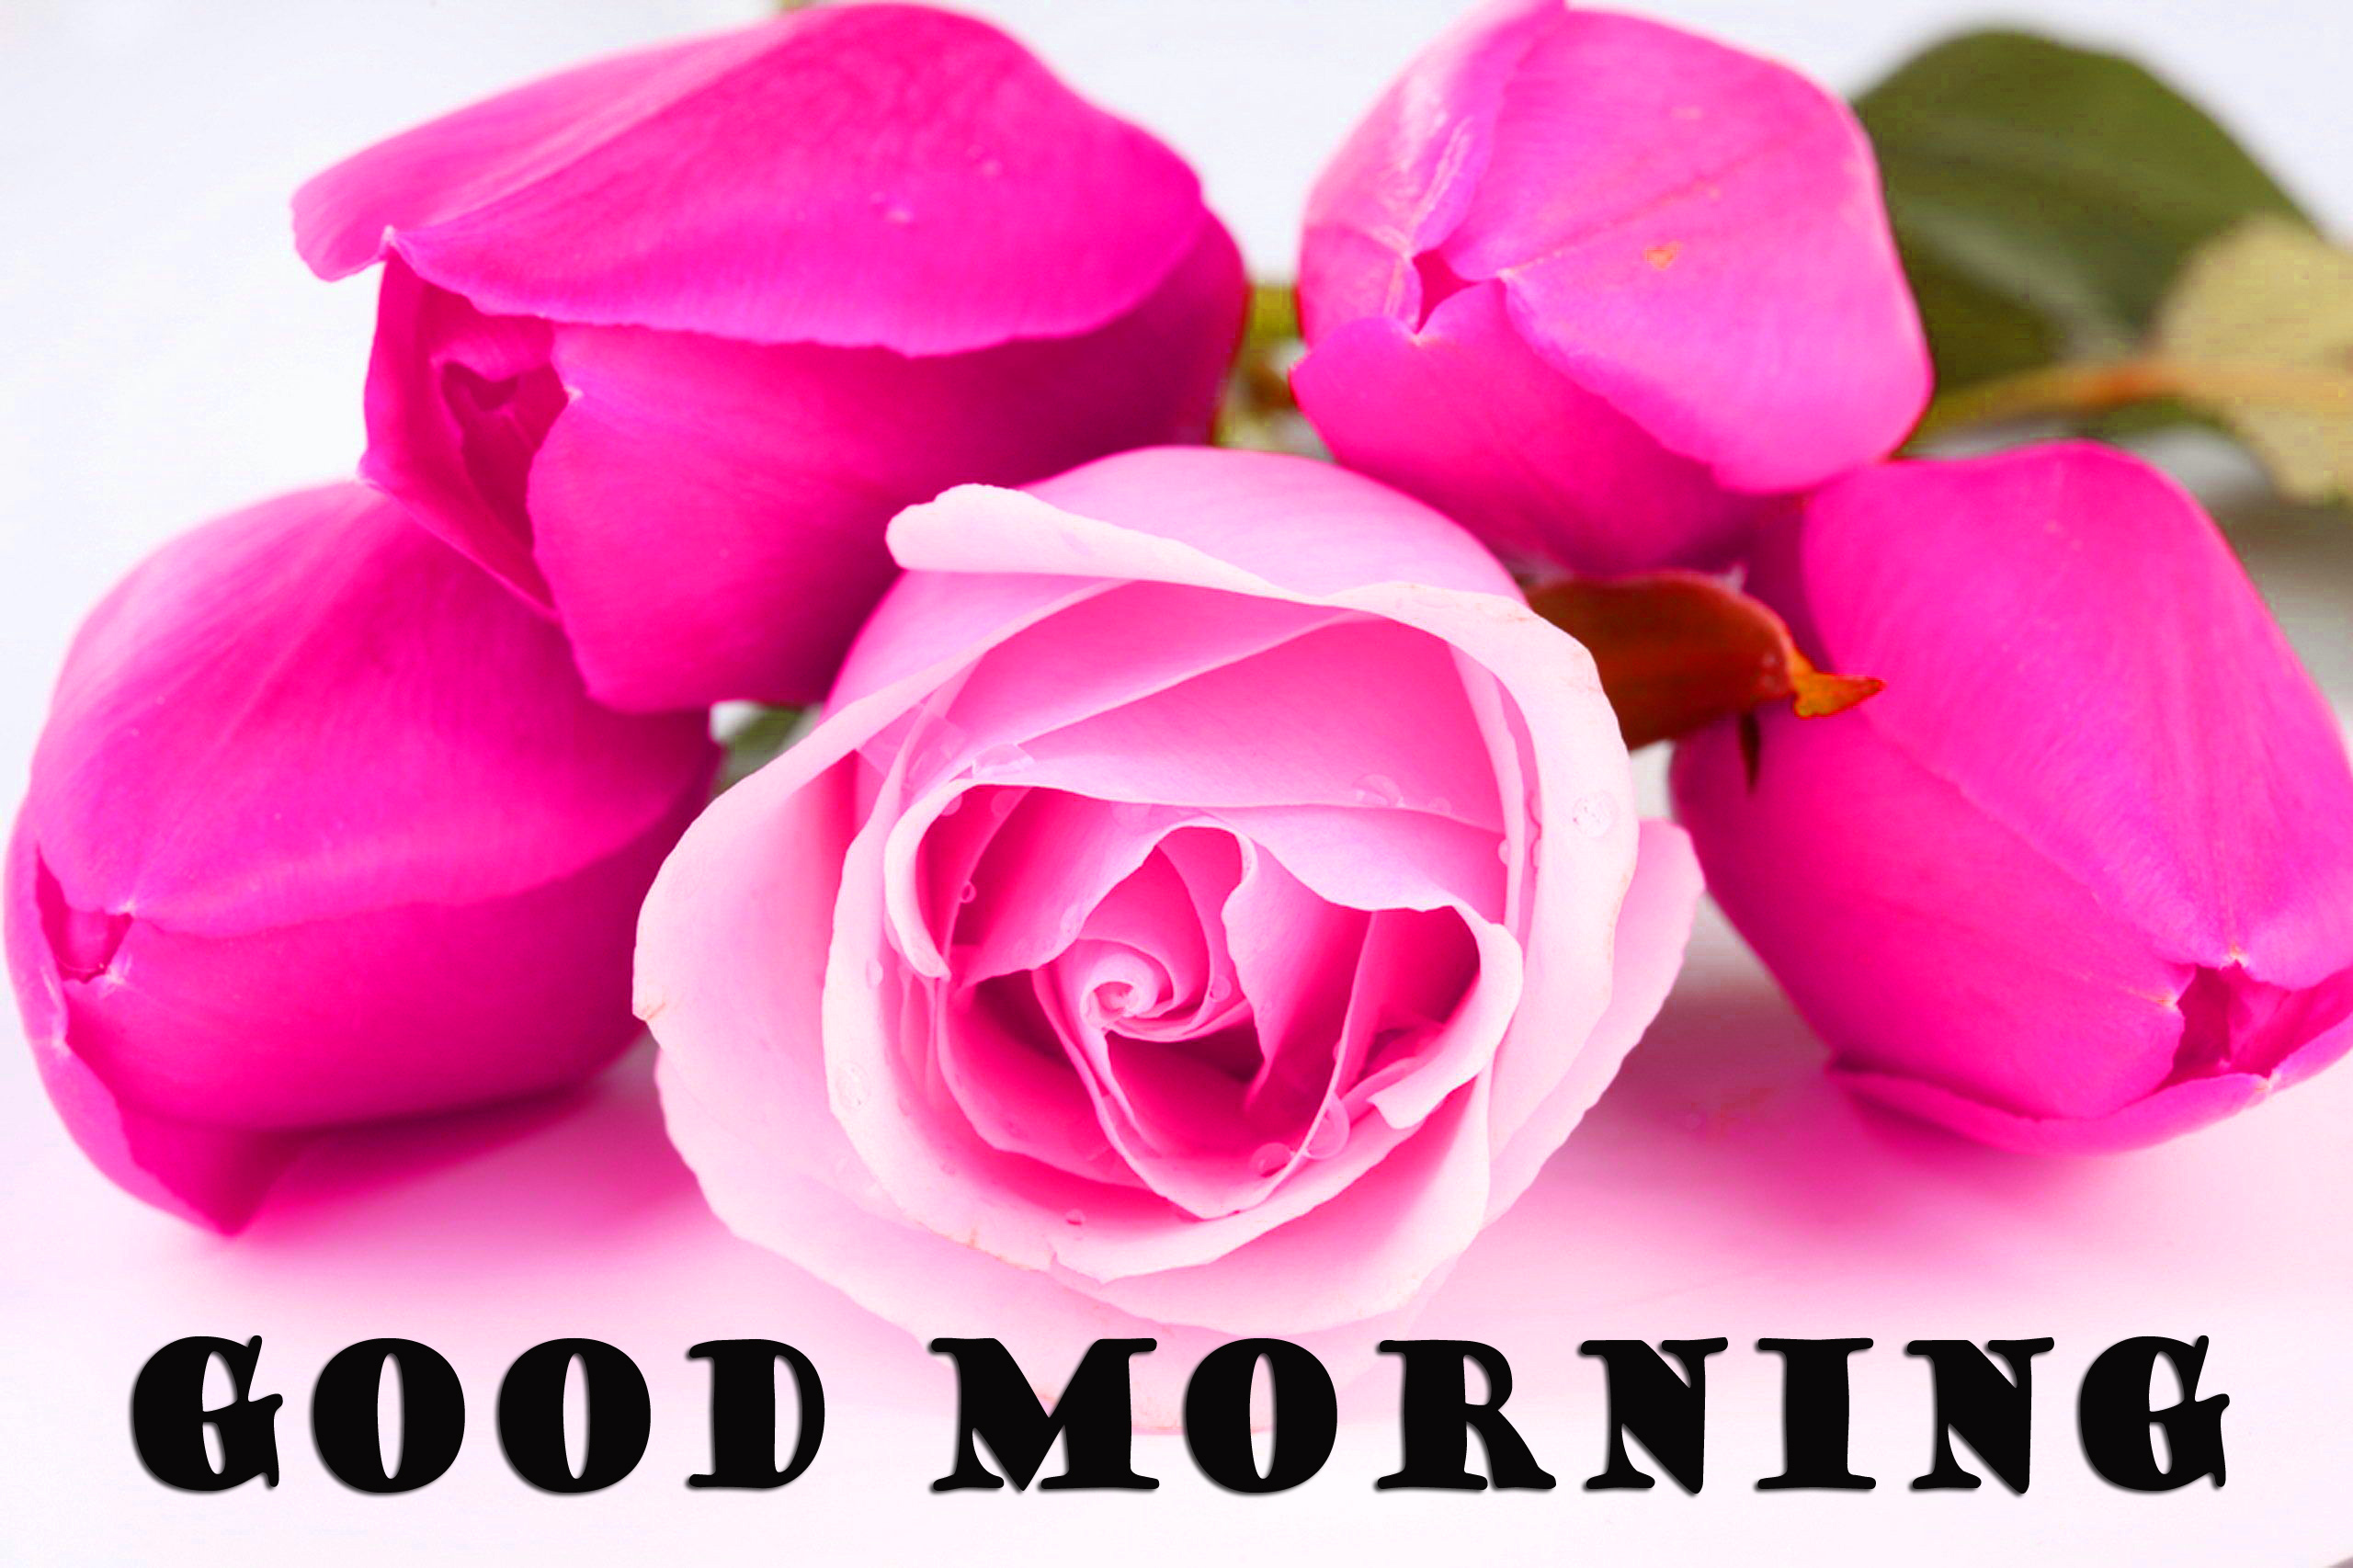 Good Morning Flowers Photo Wallpaper Pictures For Whatsapp